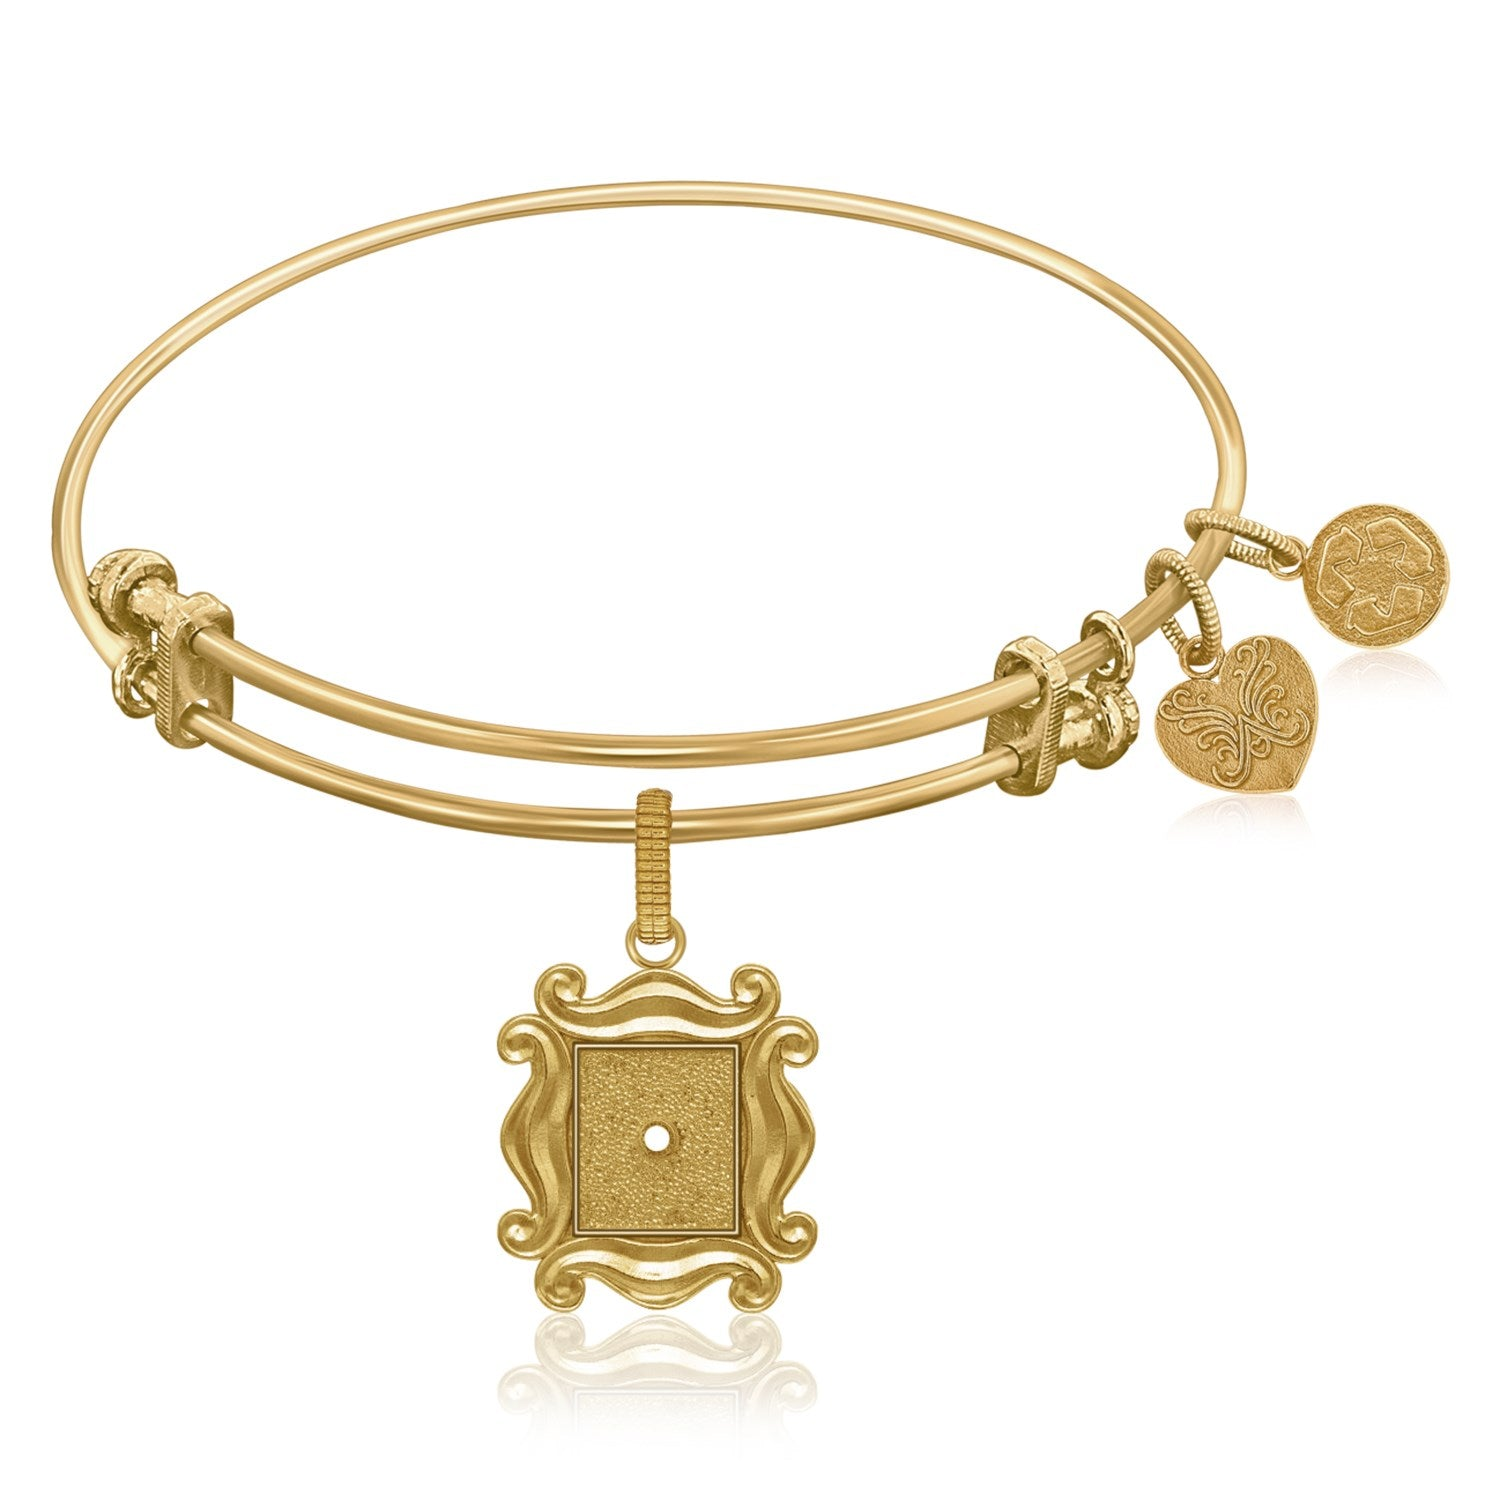 Expandable Bangle in Yellow Tone Brass with Picture Frame Over The Peephole Symbol